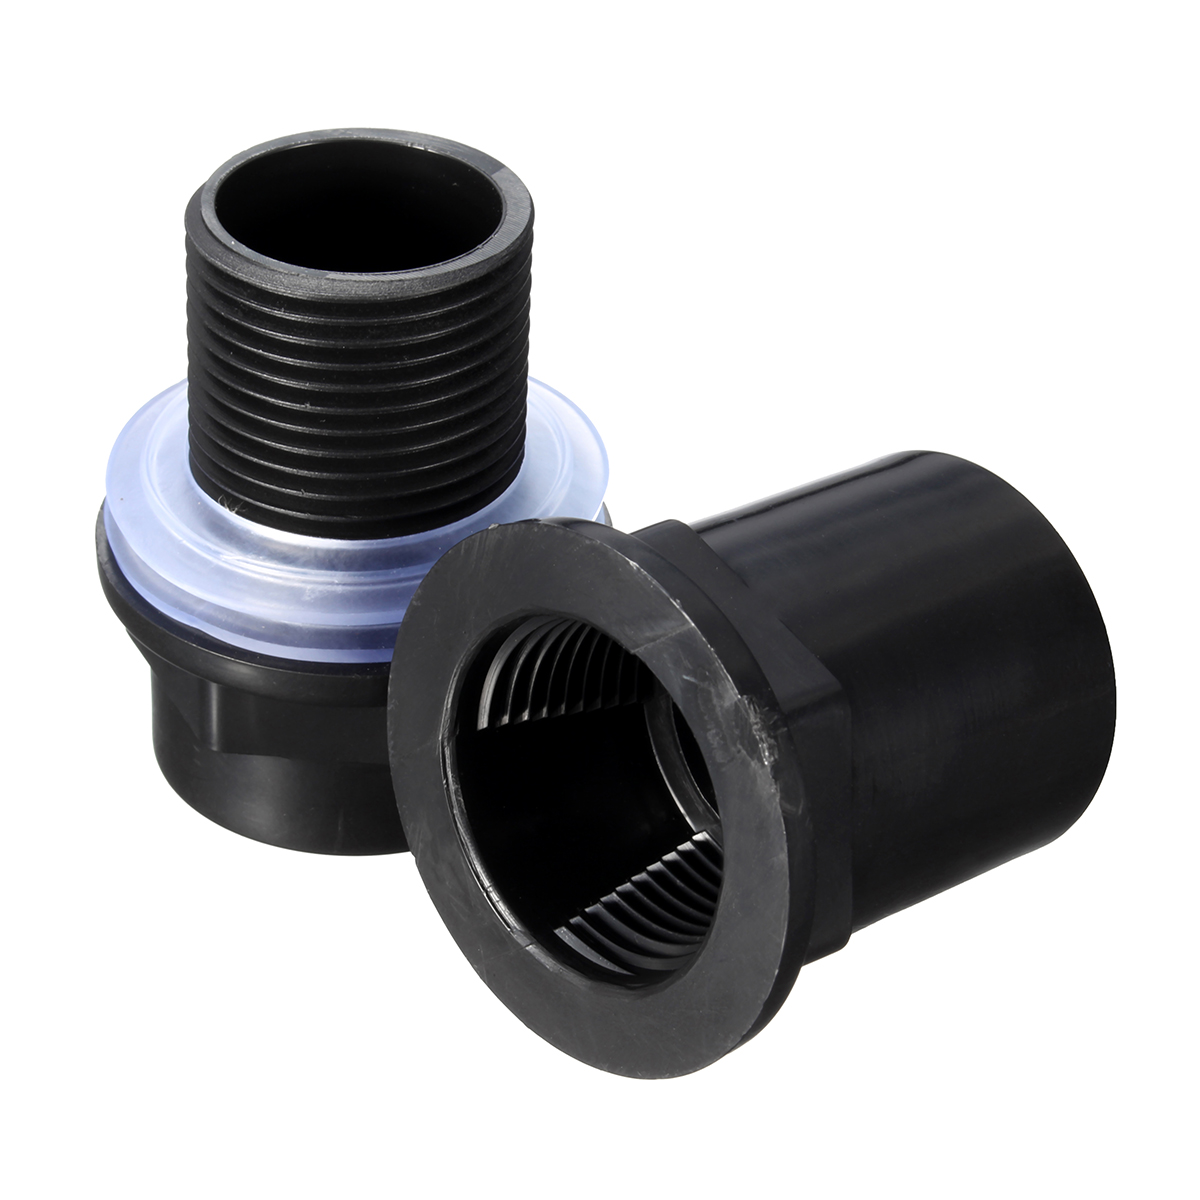 Aquarium PVC Connector Plastic PVC Pipe Butt Fish Tank Straight Up Pipe Fitting Joint Connection